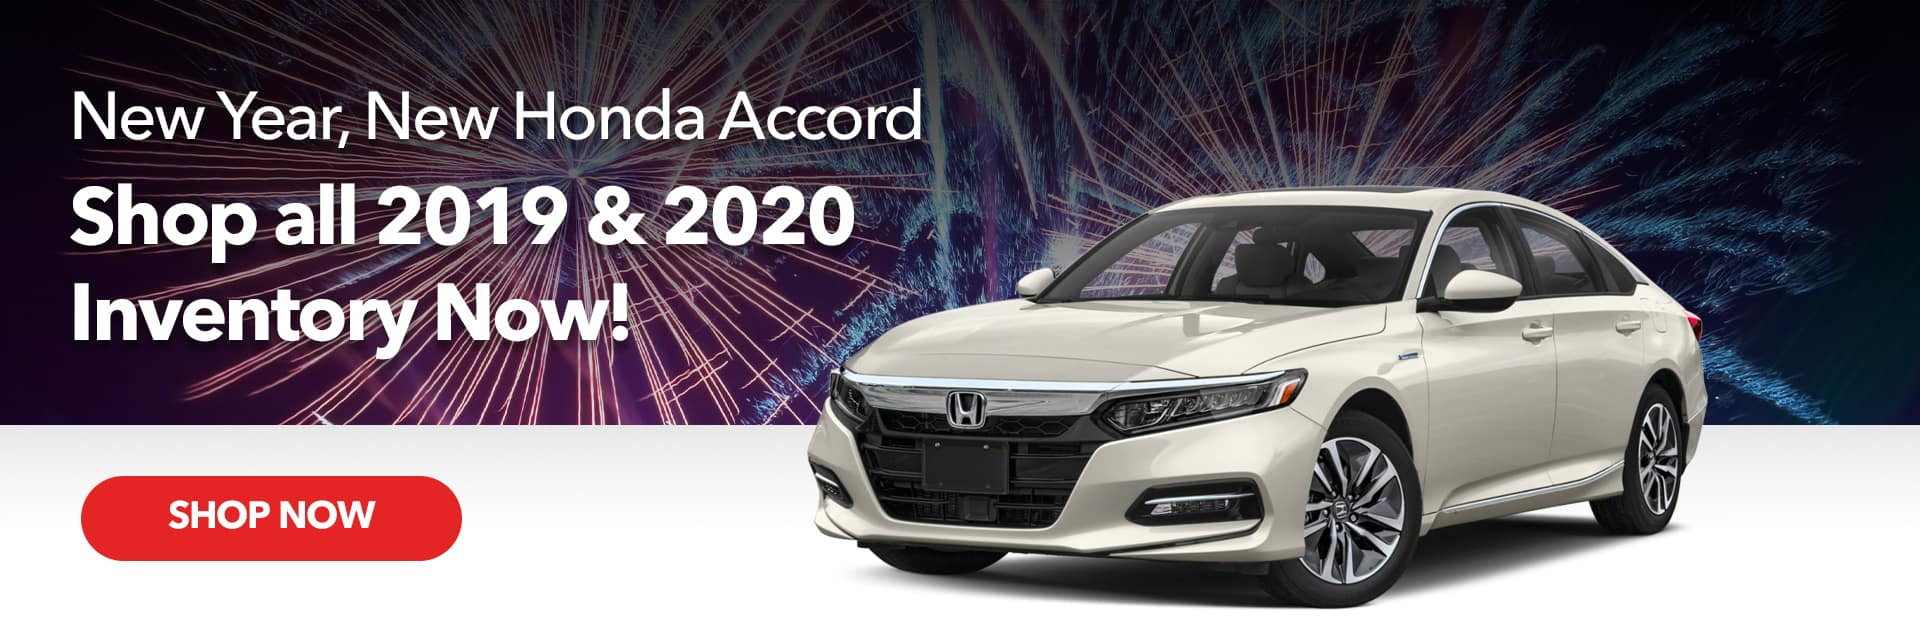 Link to January Offers - Honda Accord